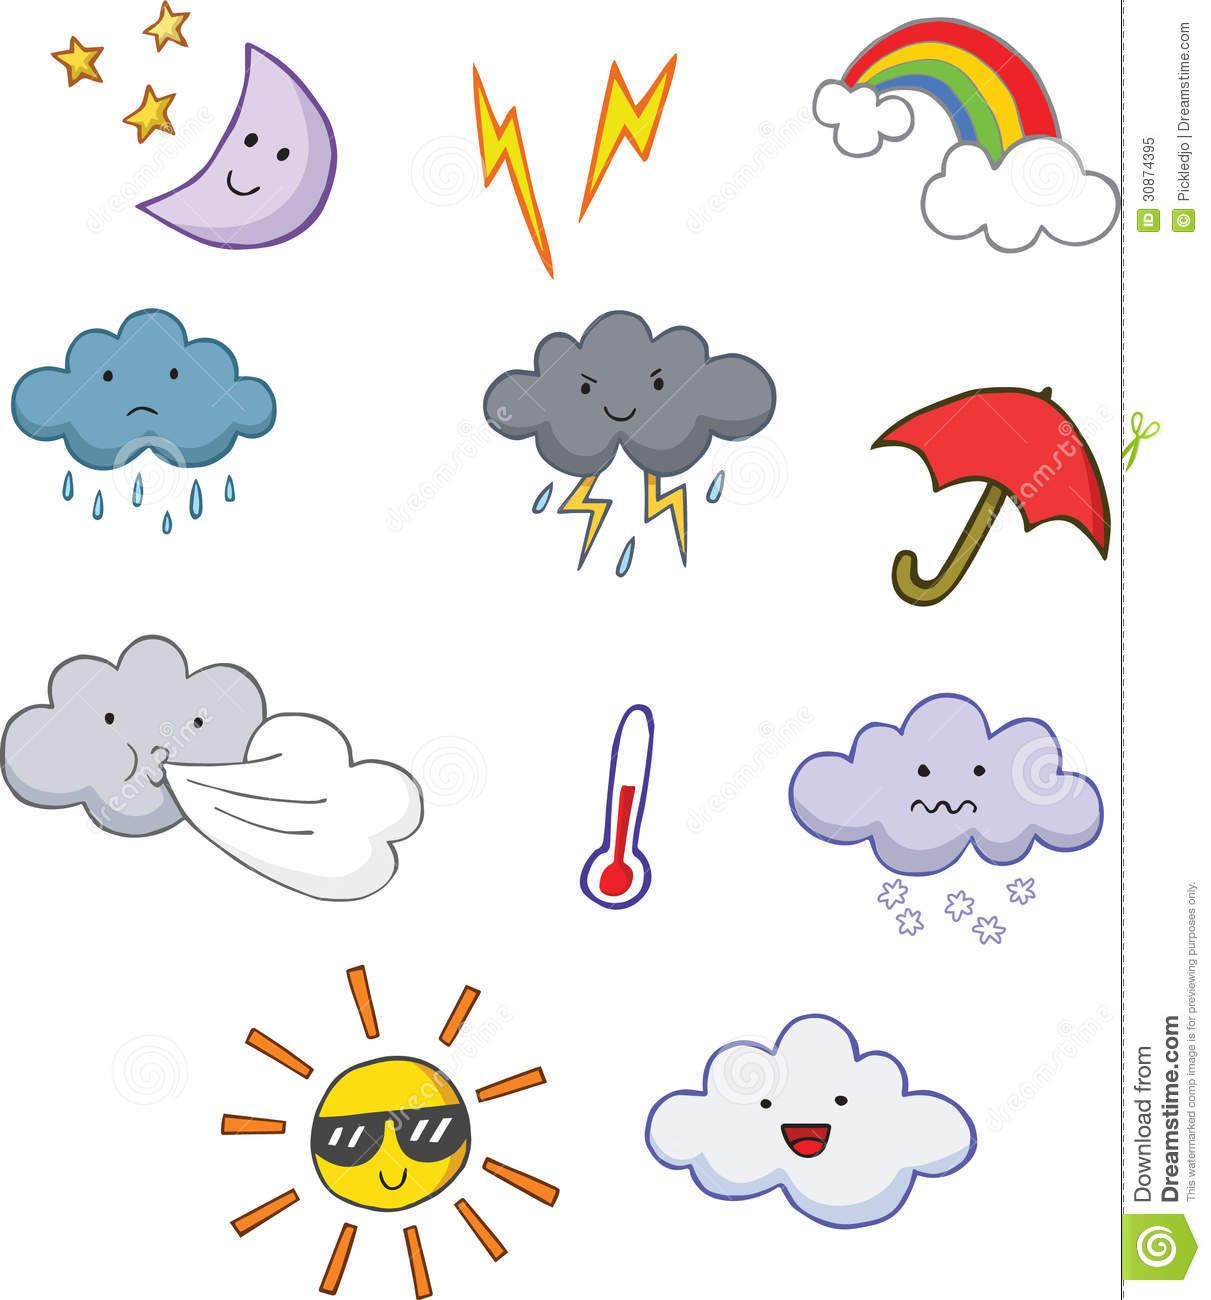 Weather cartoon clipart image black and white Fun Cute Cartoon Weather Symbols - Download From Over 40 ... image black and white